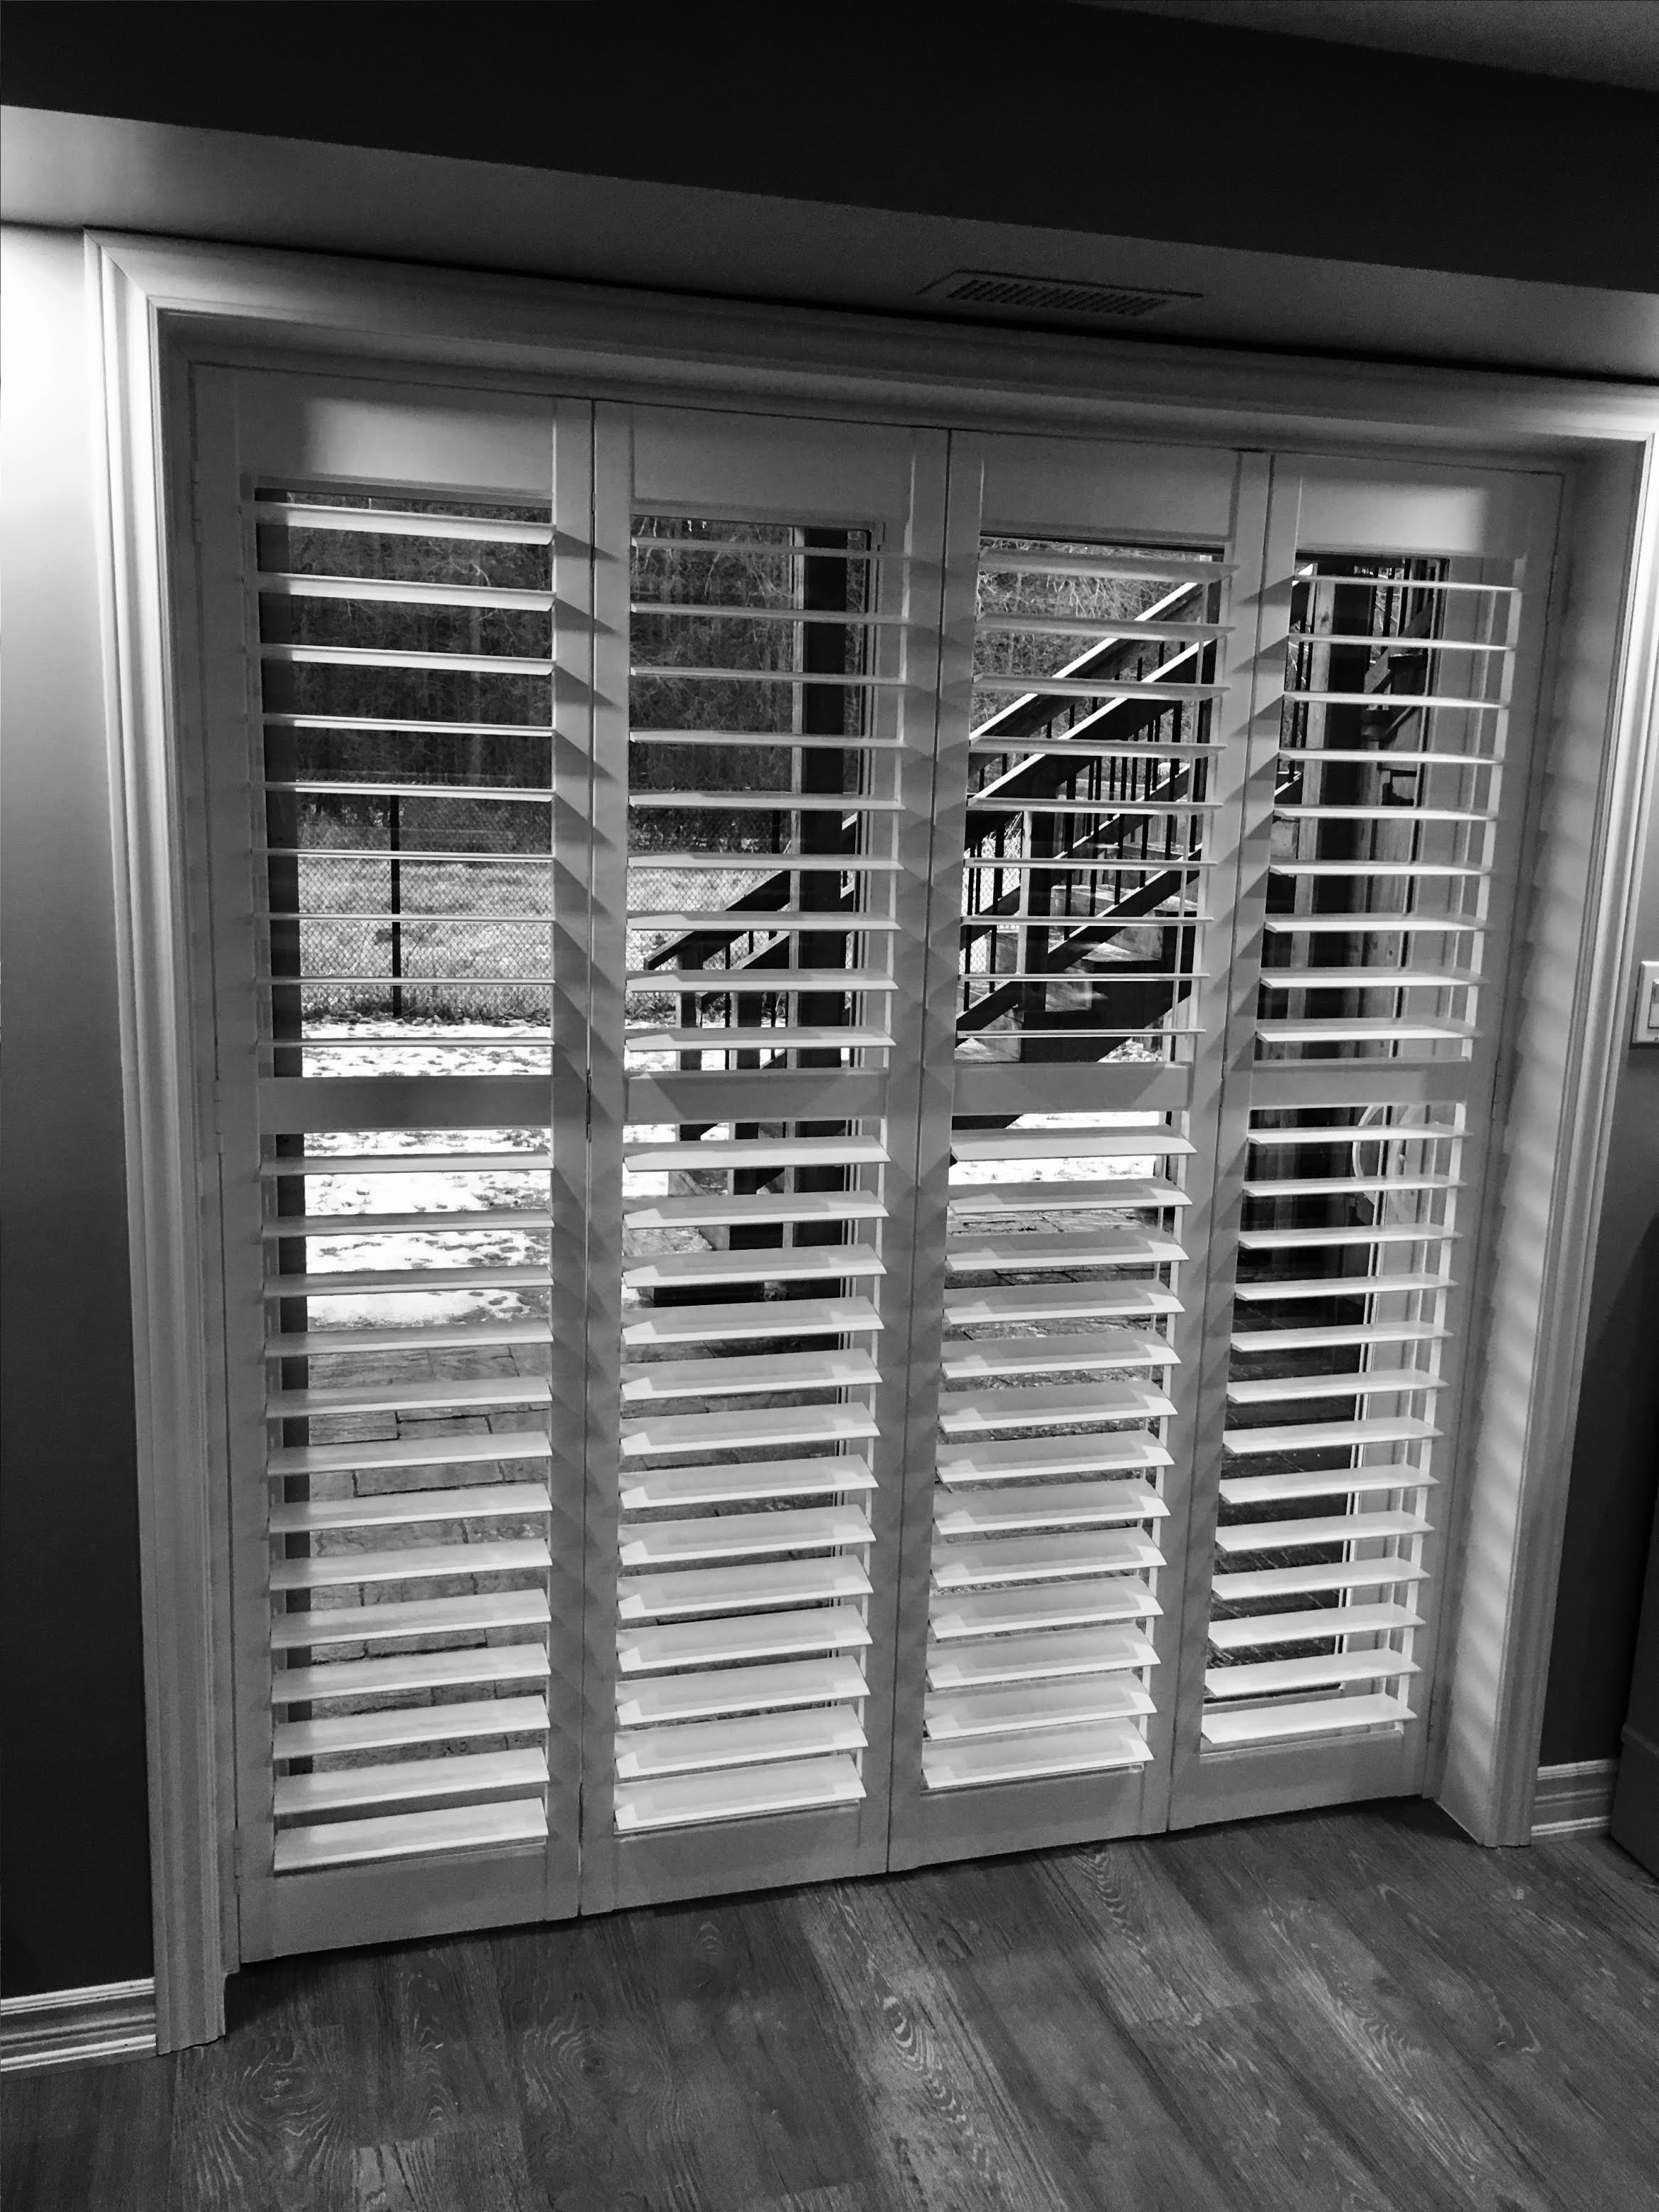 in shutters blinds by ontario ltd window your commercial london shades scrolling quality source for design